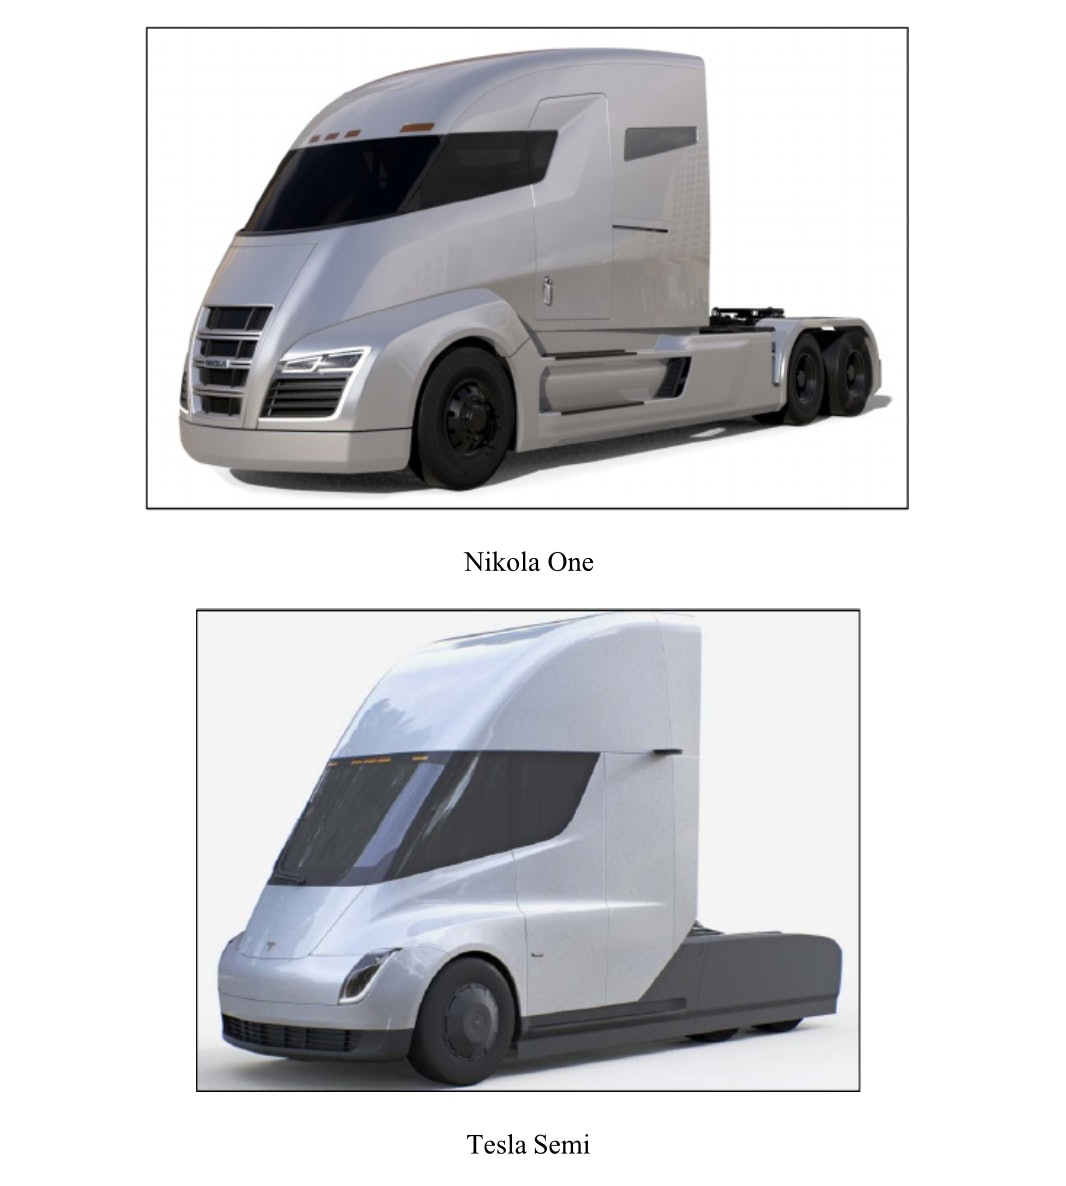 Mikola compares the Tesla Semi in court documents.